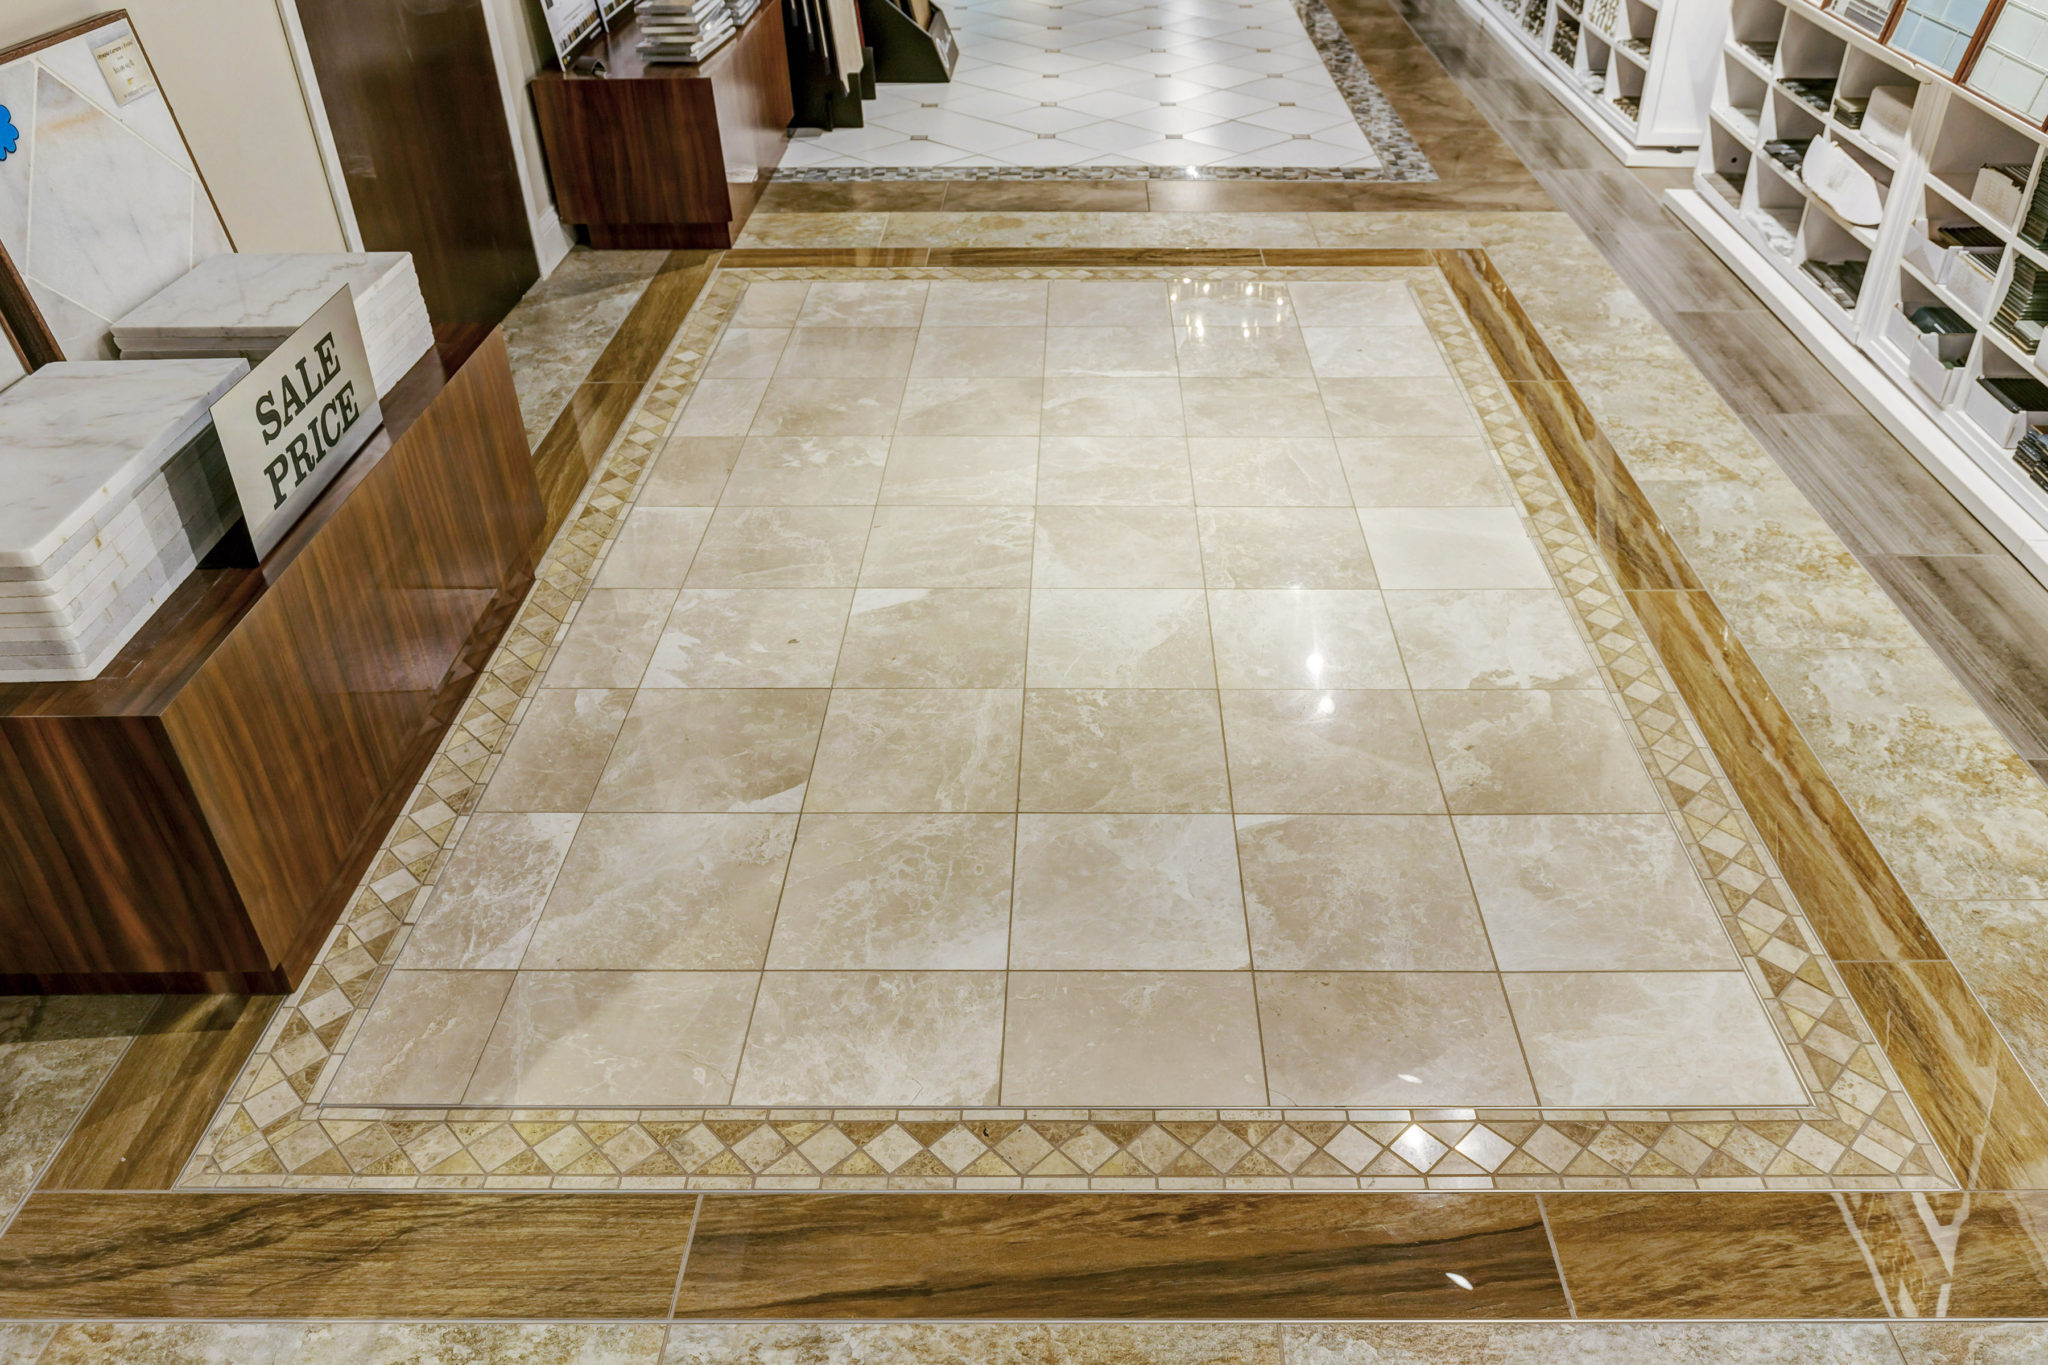 St louis tile company ellisville mo 63021 ceramic porcelain stone travertine tile dailygadgetfo Choice Image